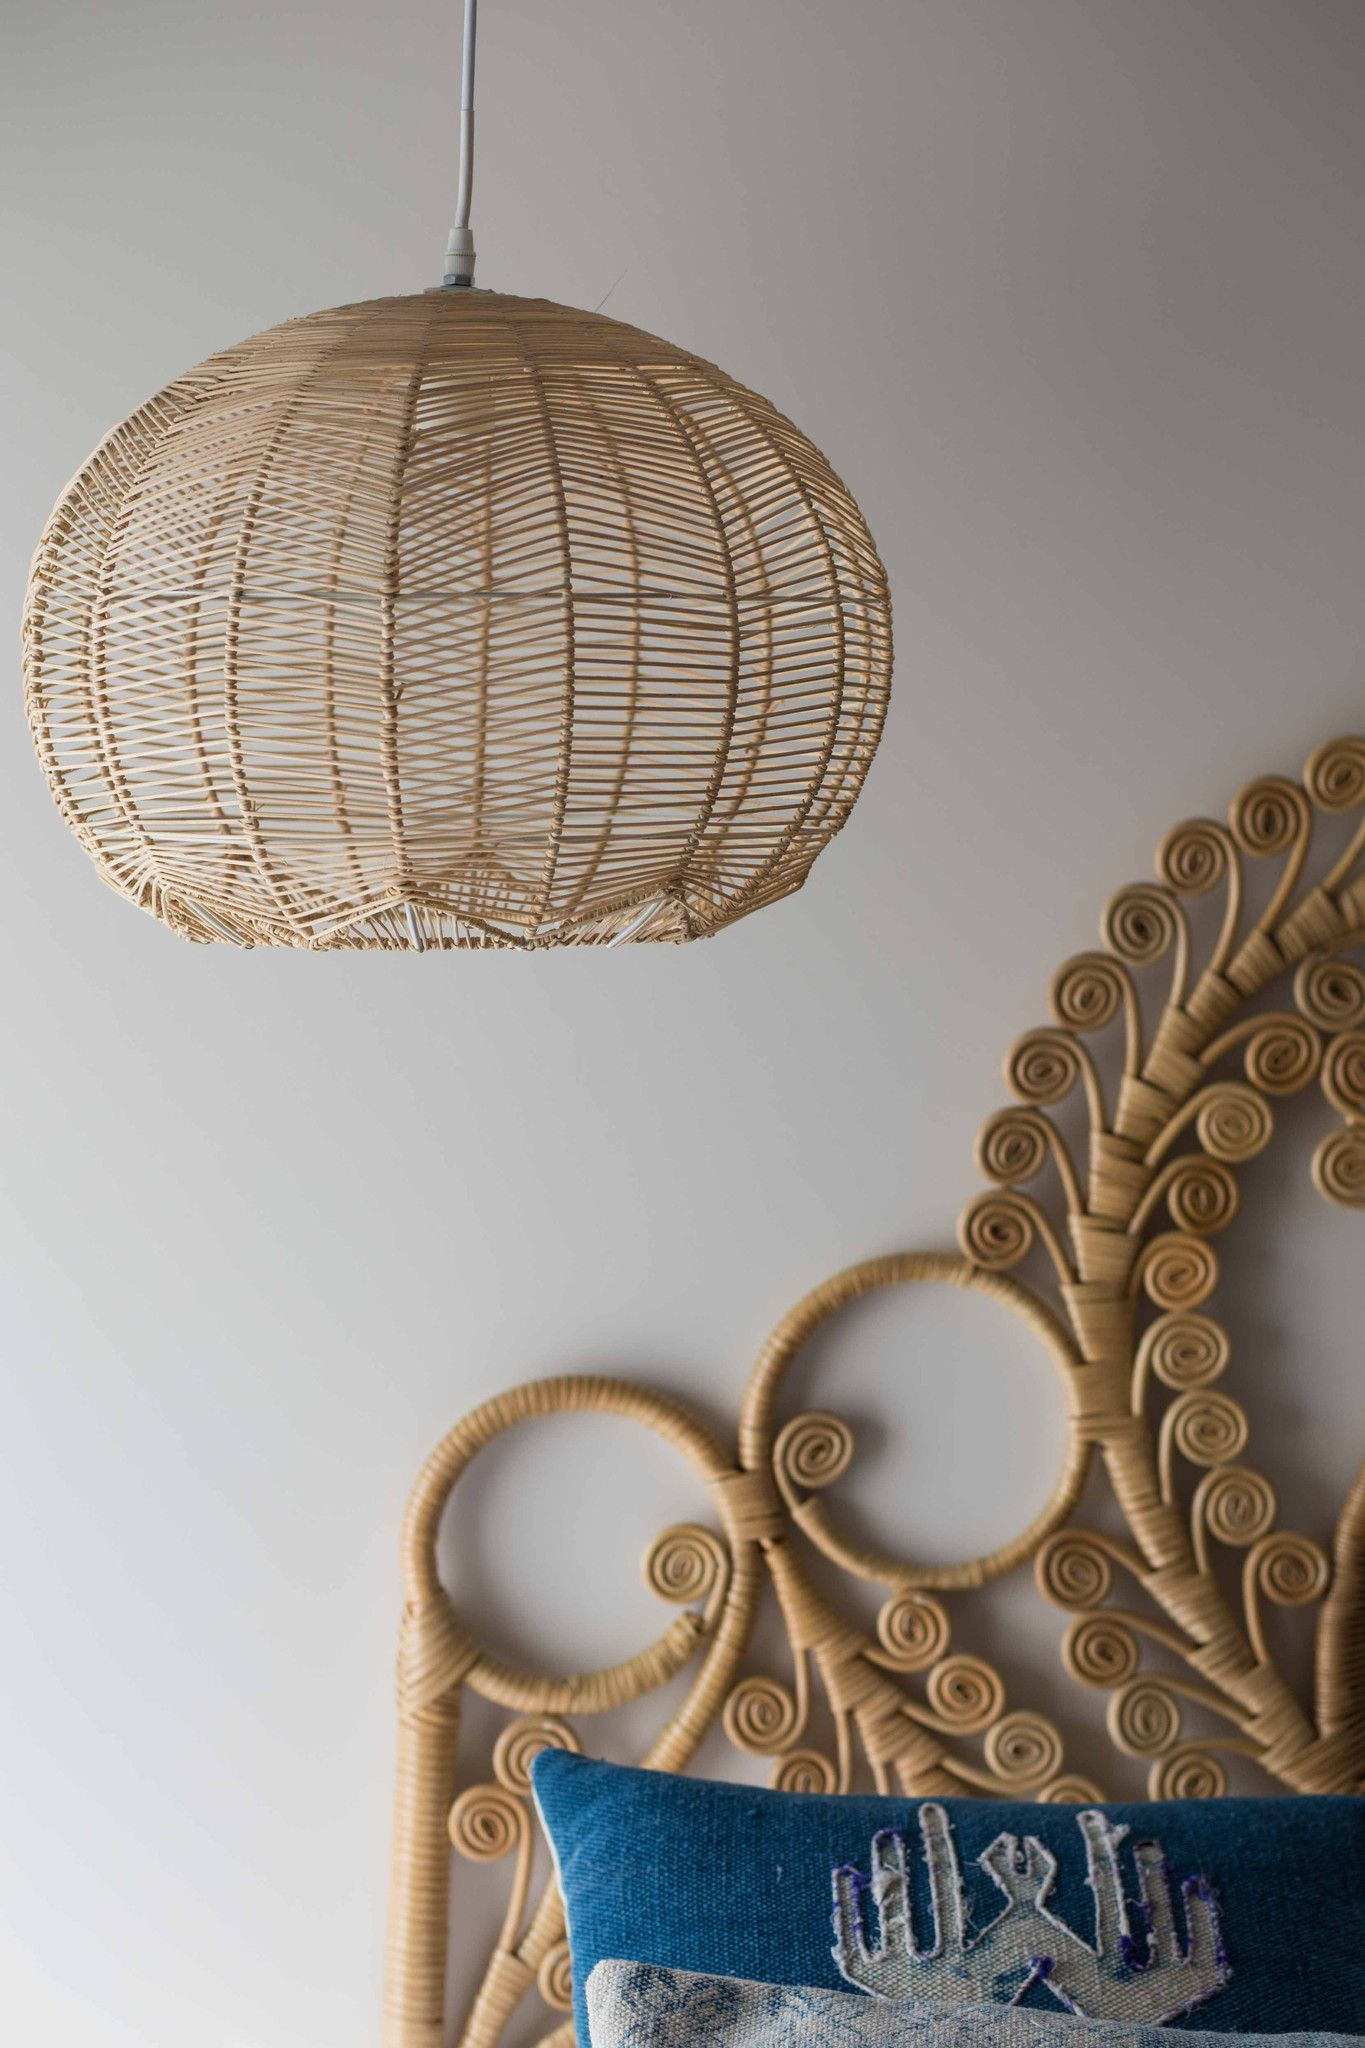 Natural round rattan pendant rattan light fixture rattan pendant light pendant lamps glass